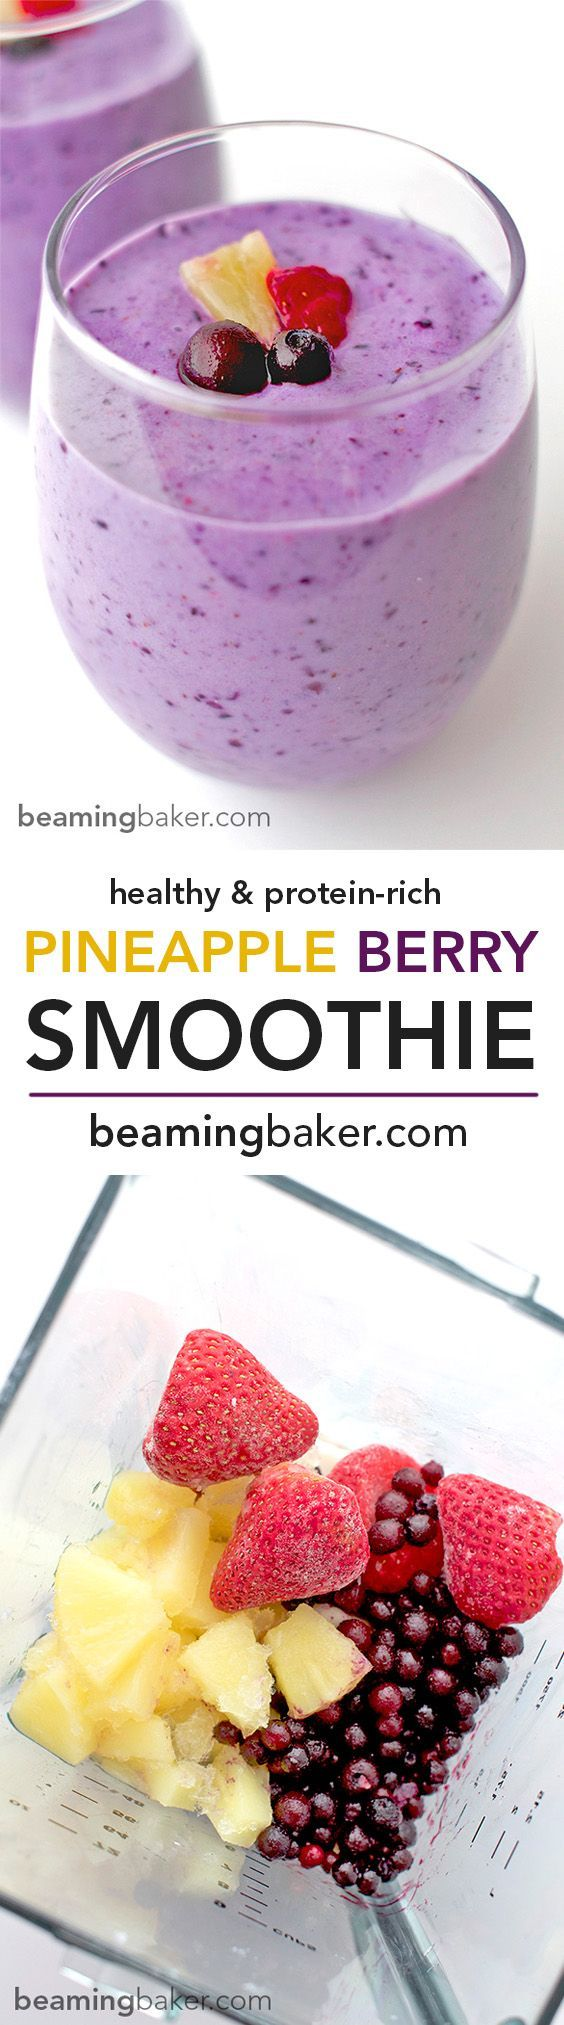 Refreshing, sweet, protein-packed Pineapple Berry Smoothies: made with Greek yogurt, strawberries, blueberries and almond milk, these smoothies are the perfect fruity boost. BEAMINGBAKER.COM #healthy #gymfuel